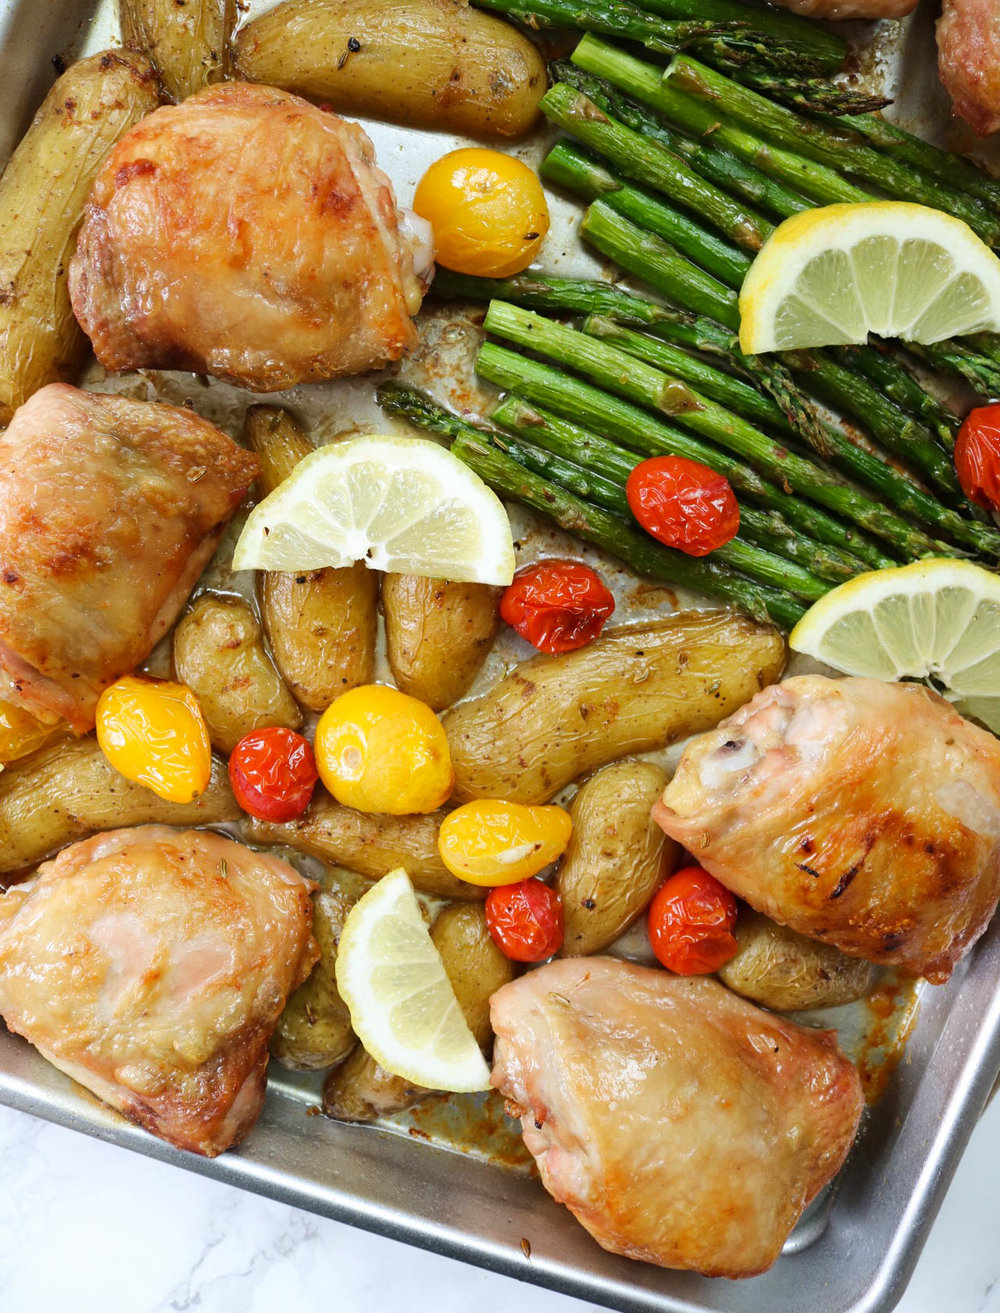 Sheet Pan Chicken with asparagus - Recipe by: From Pasta to PaleoAdd arugula for a salad